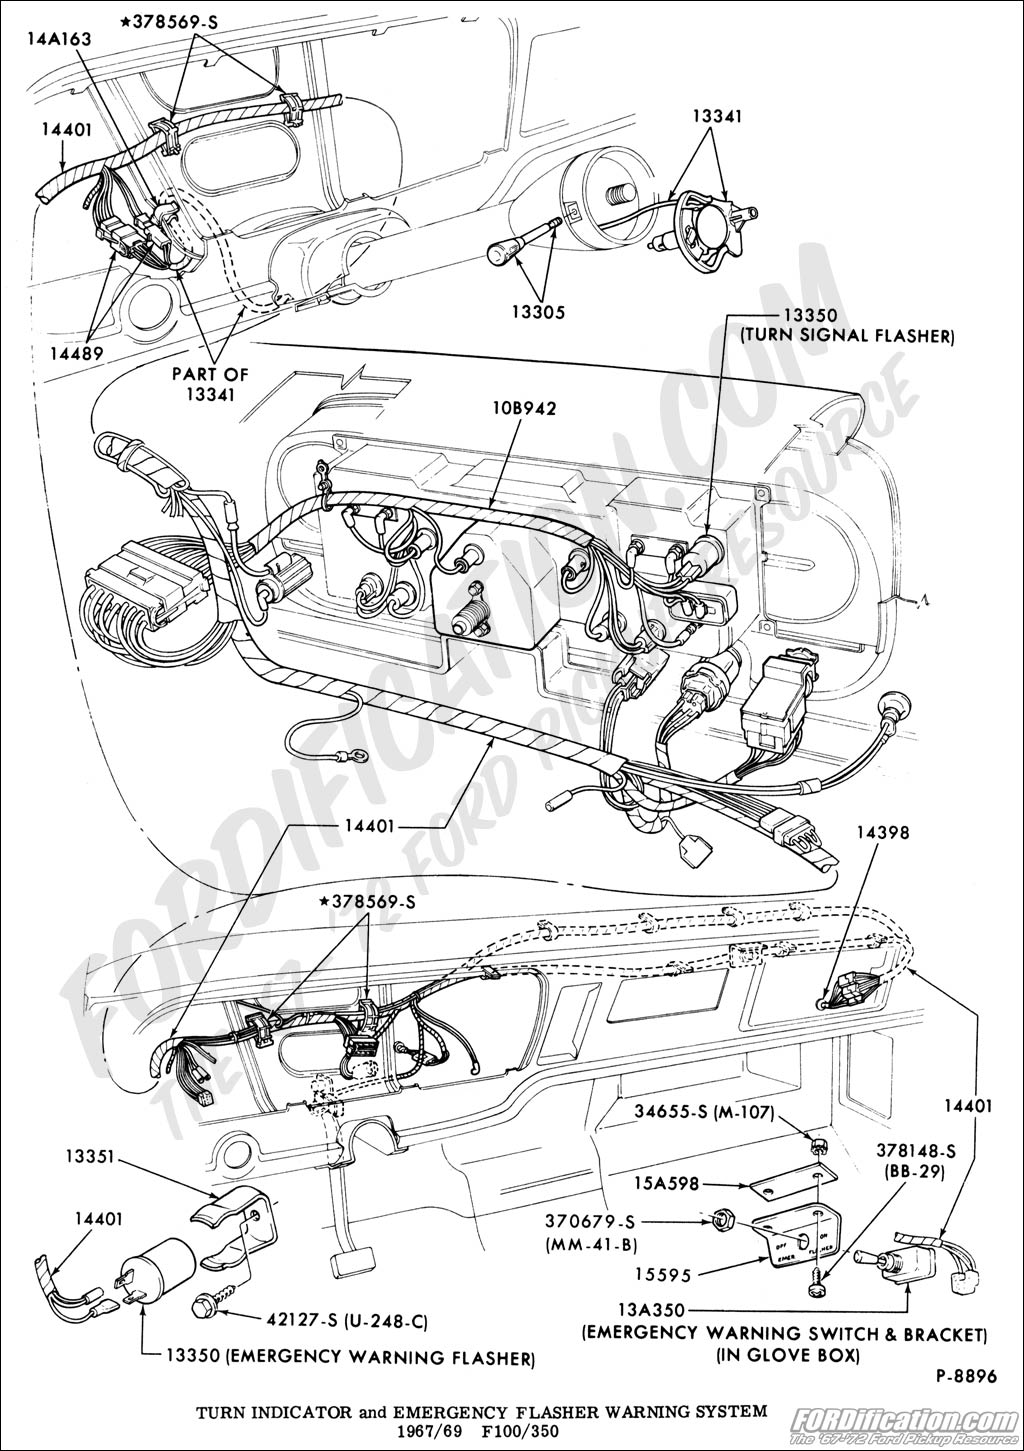 1972 F 100 Turn Signal Wiring Diagram Trusted 1965 Ford F100 Similiar Horn Keywords Schematic